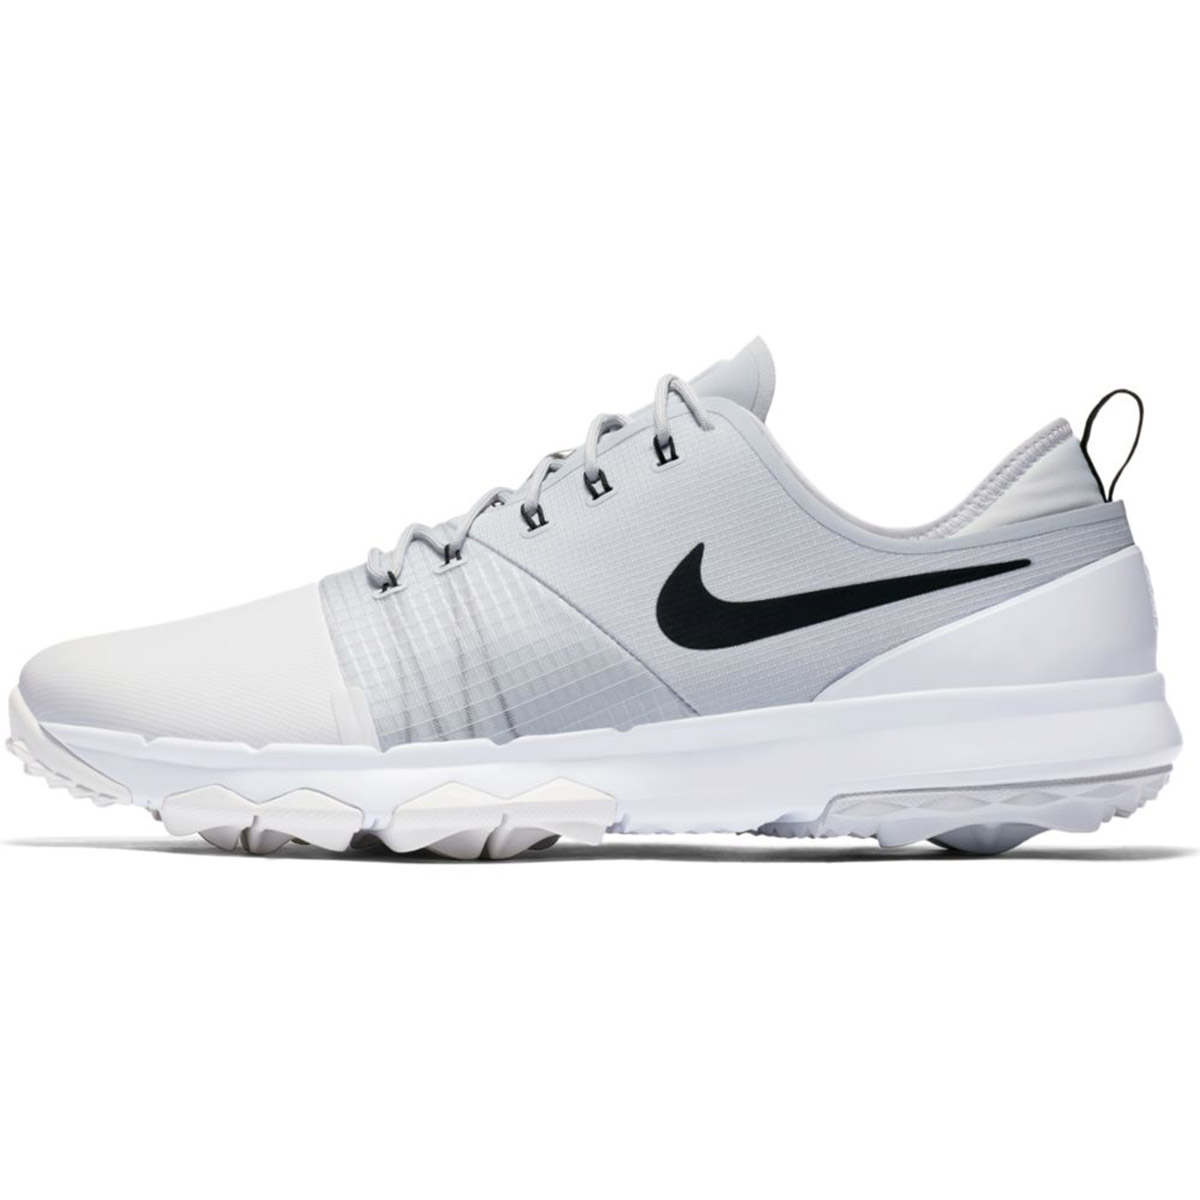 comportarse Alaska Proporcional  Nike Golf FI Impact 3 Shoes from american golf